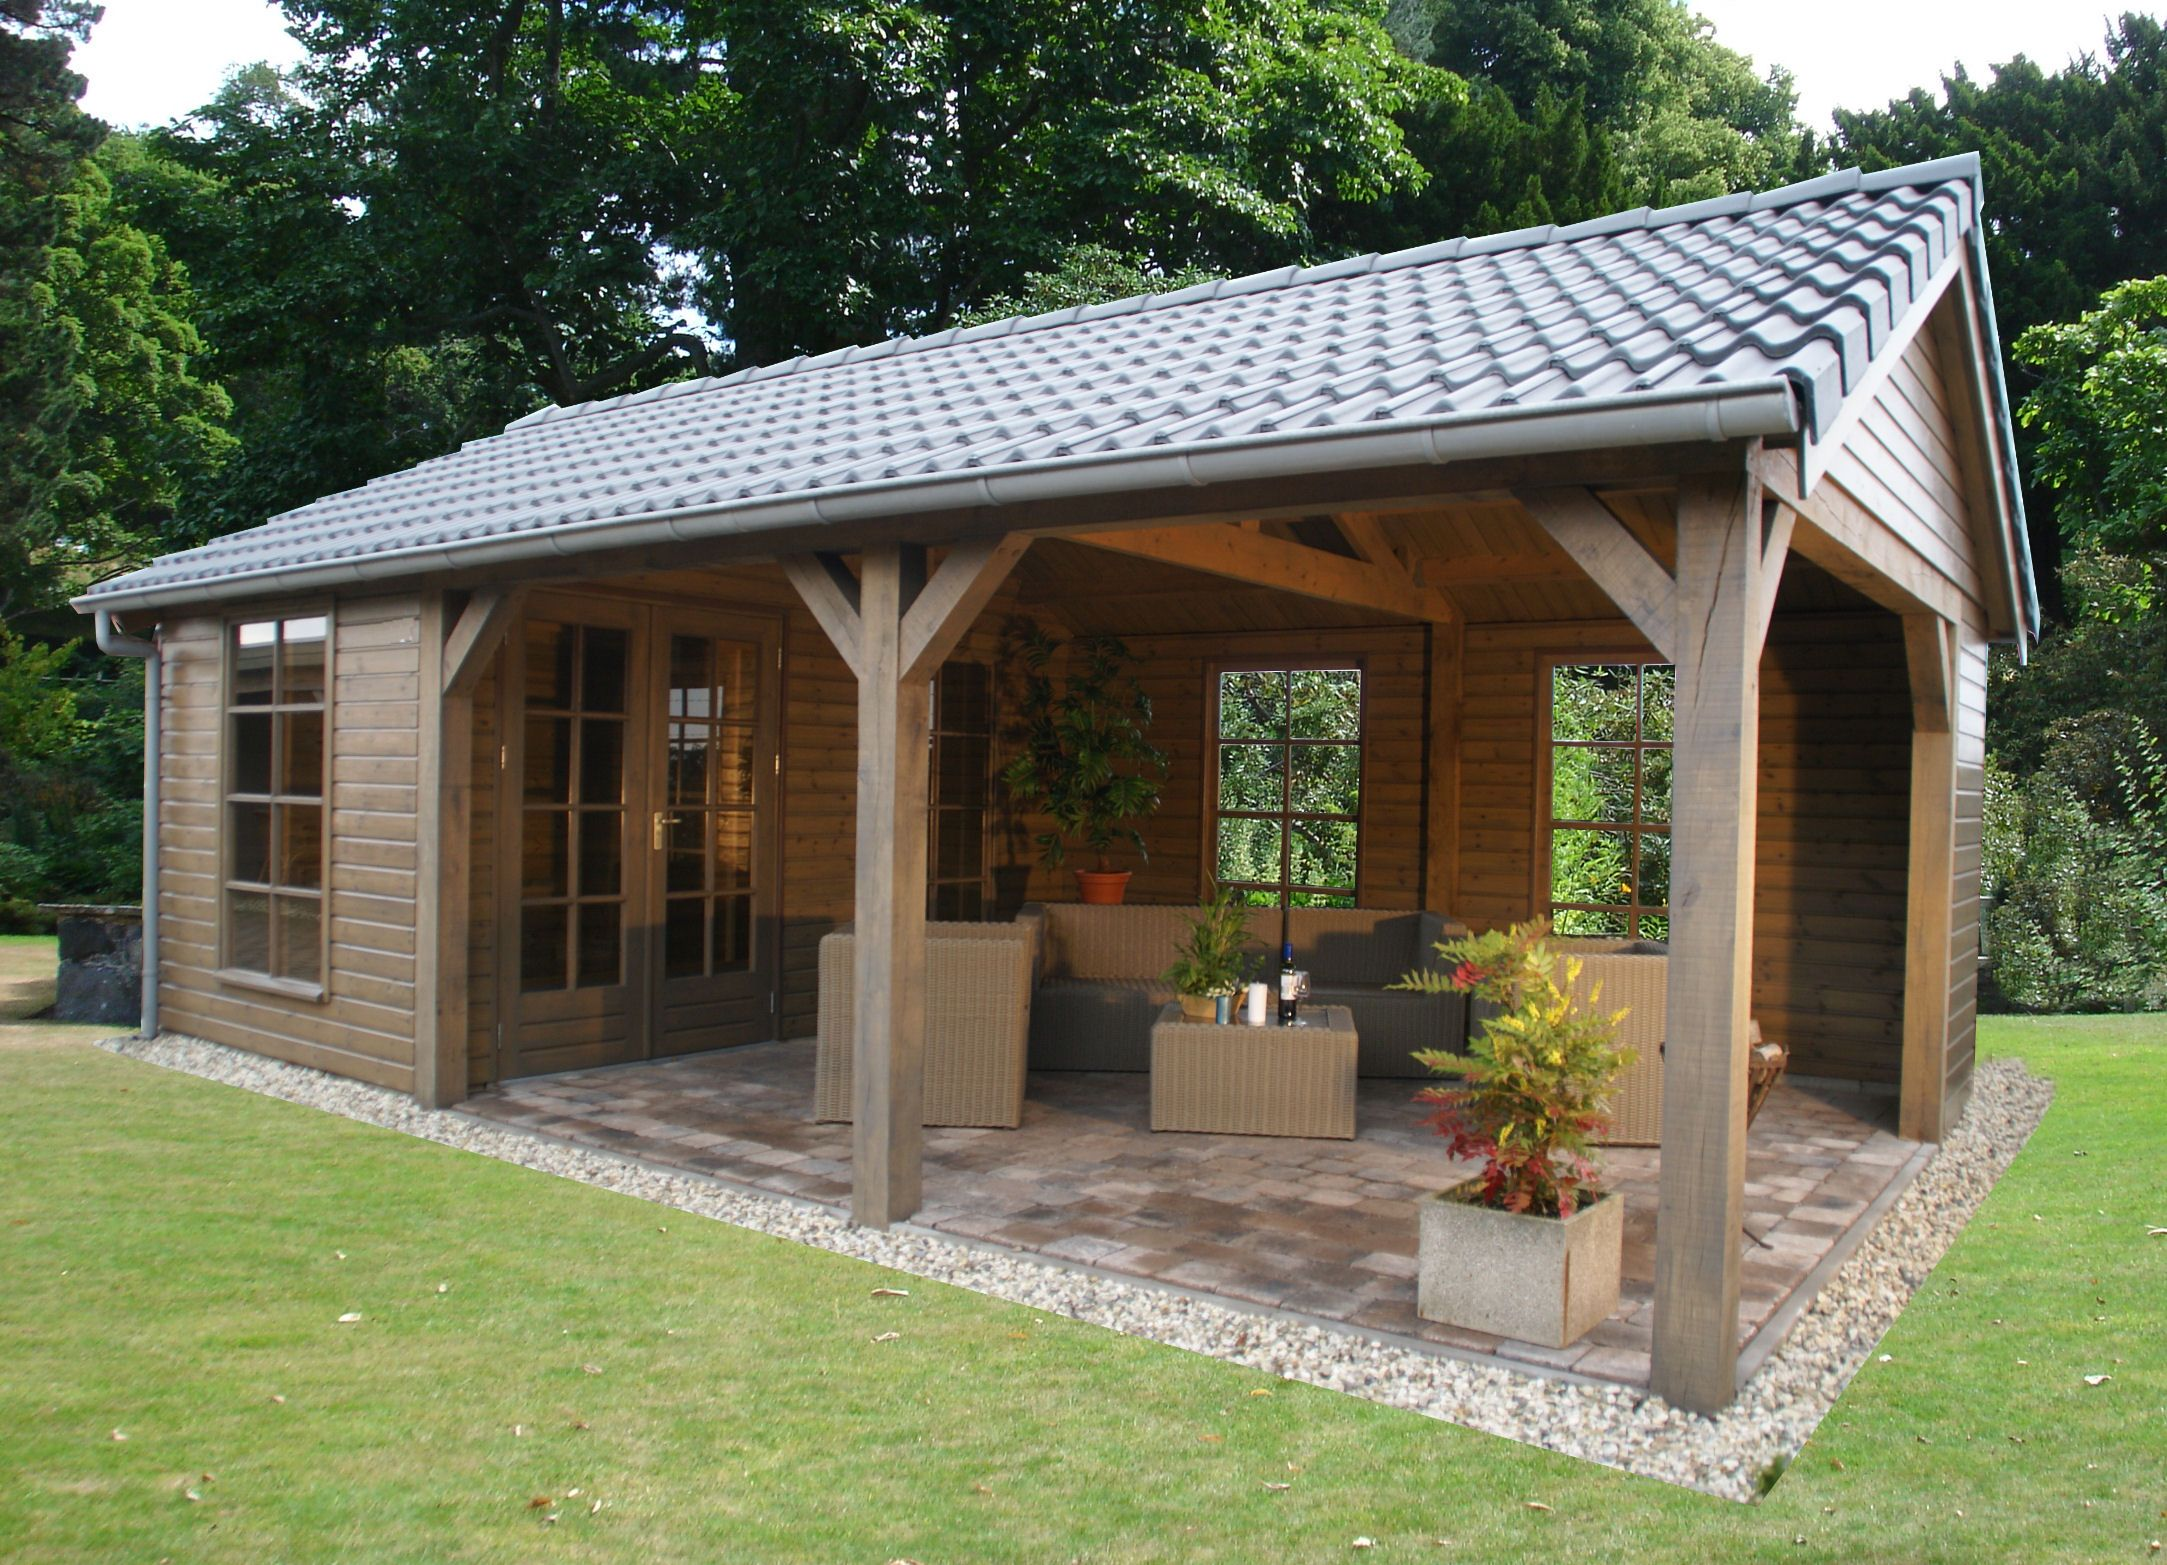 find this pin and more on shed ideas by hvdheidex